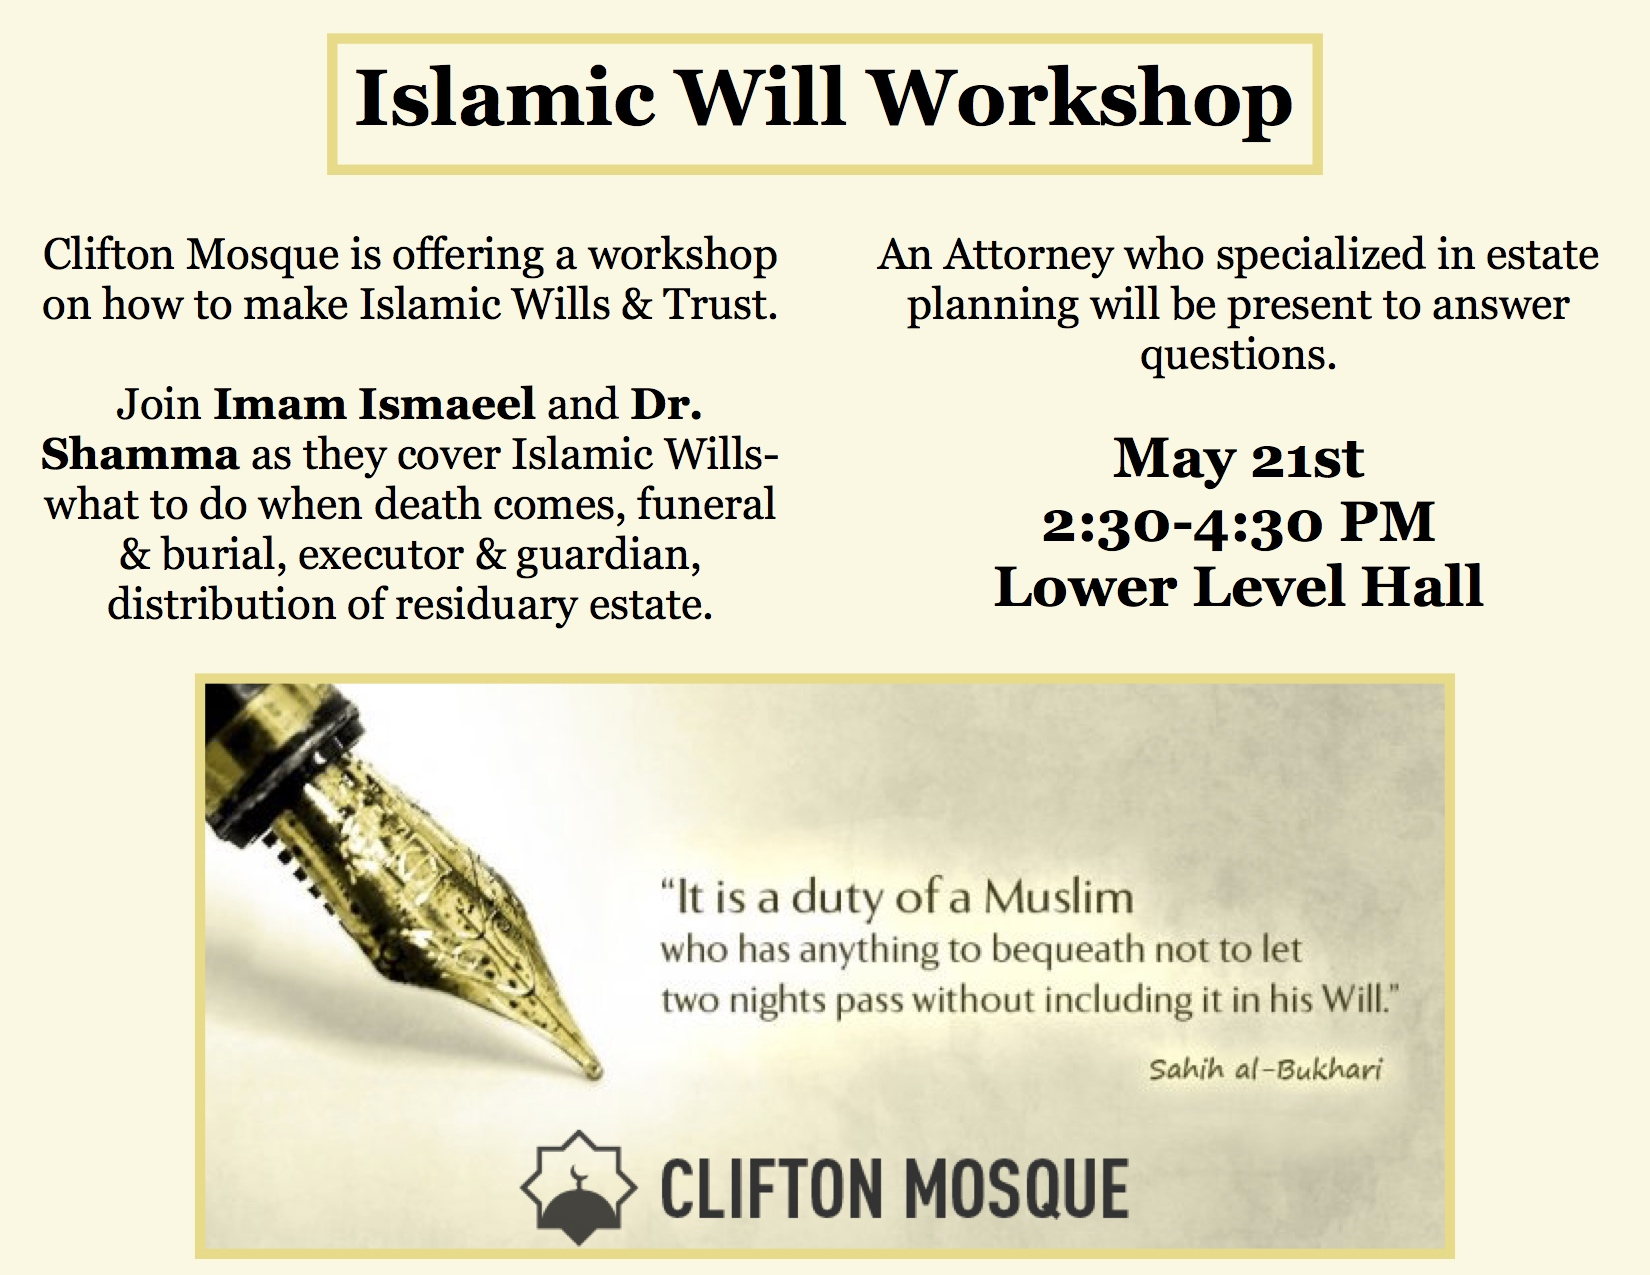 Join us for this amazing workshop as Imam Ismaeel and Dr. Shamma cover Islamic Wills, wills, trusts, and what to do when death comes.  There will be an attorney who specializes in estate planning present to answer all your questions.